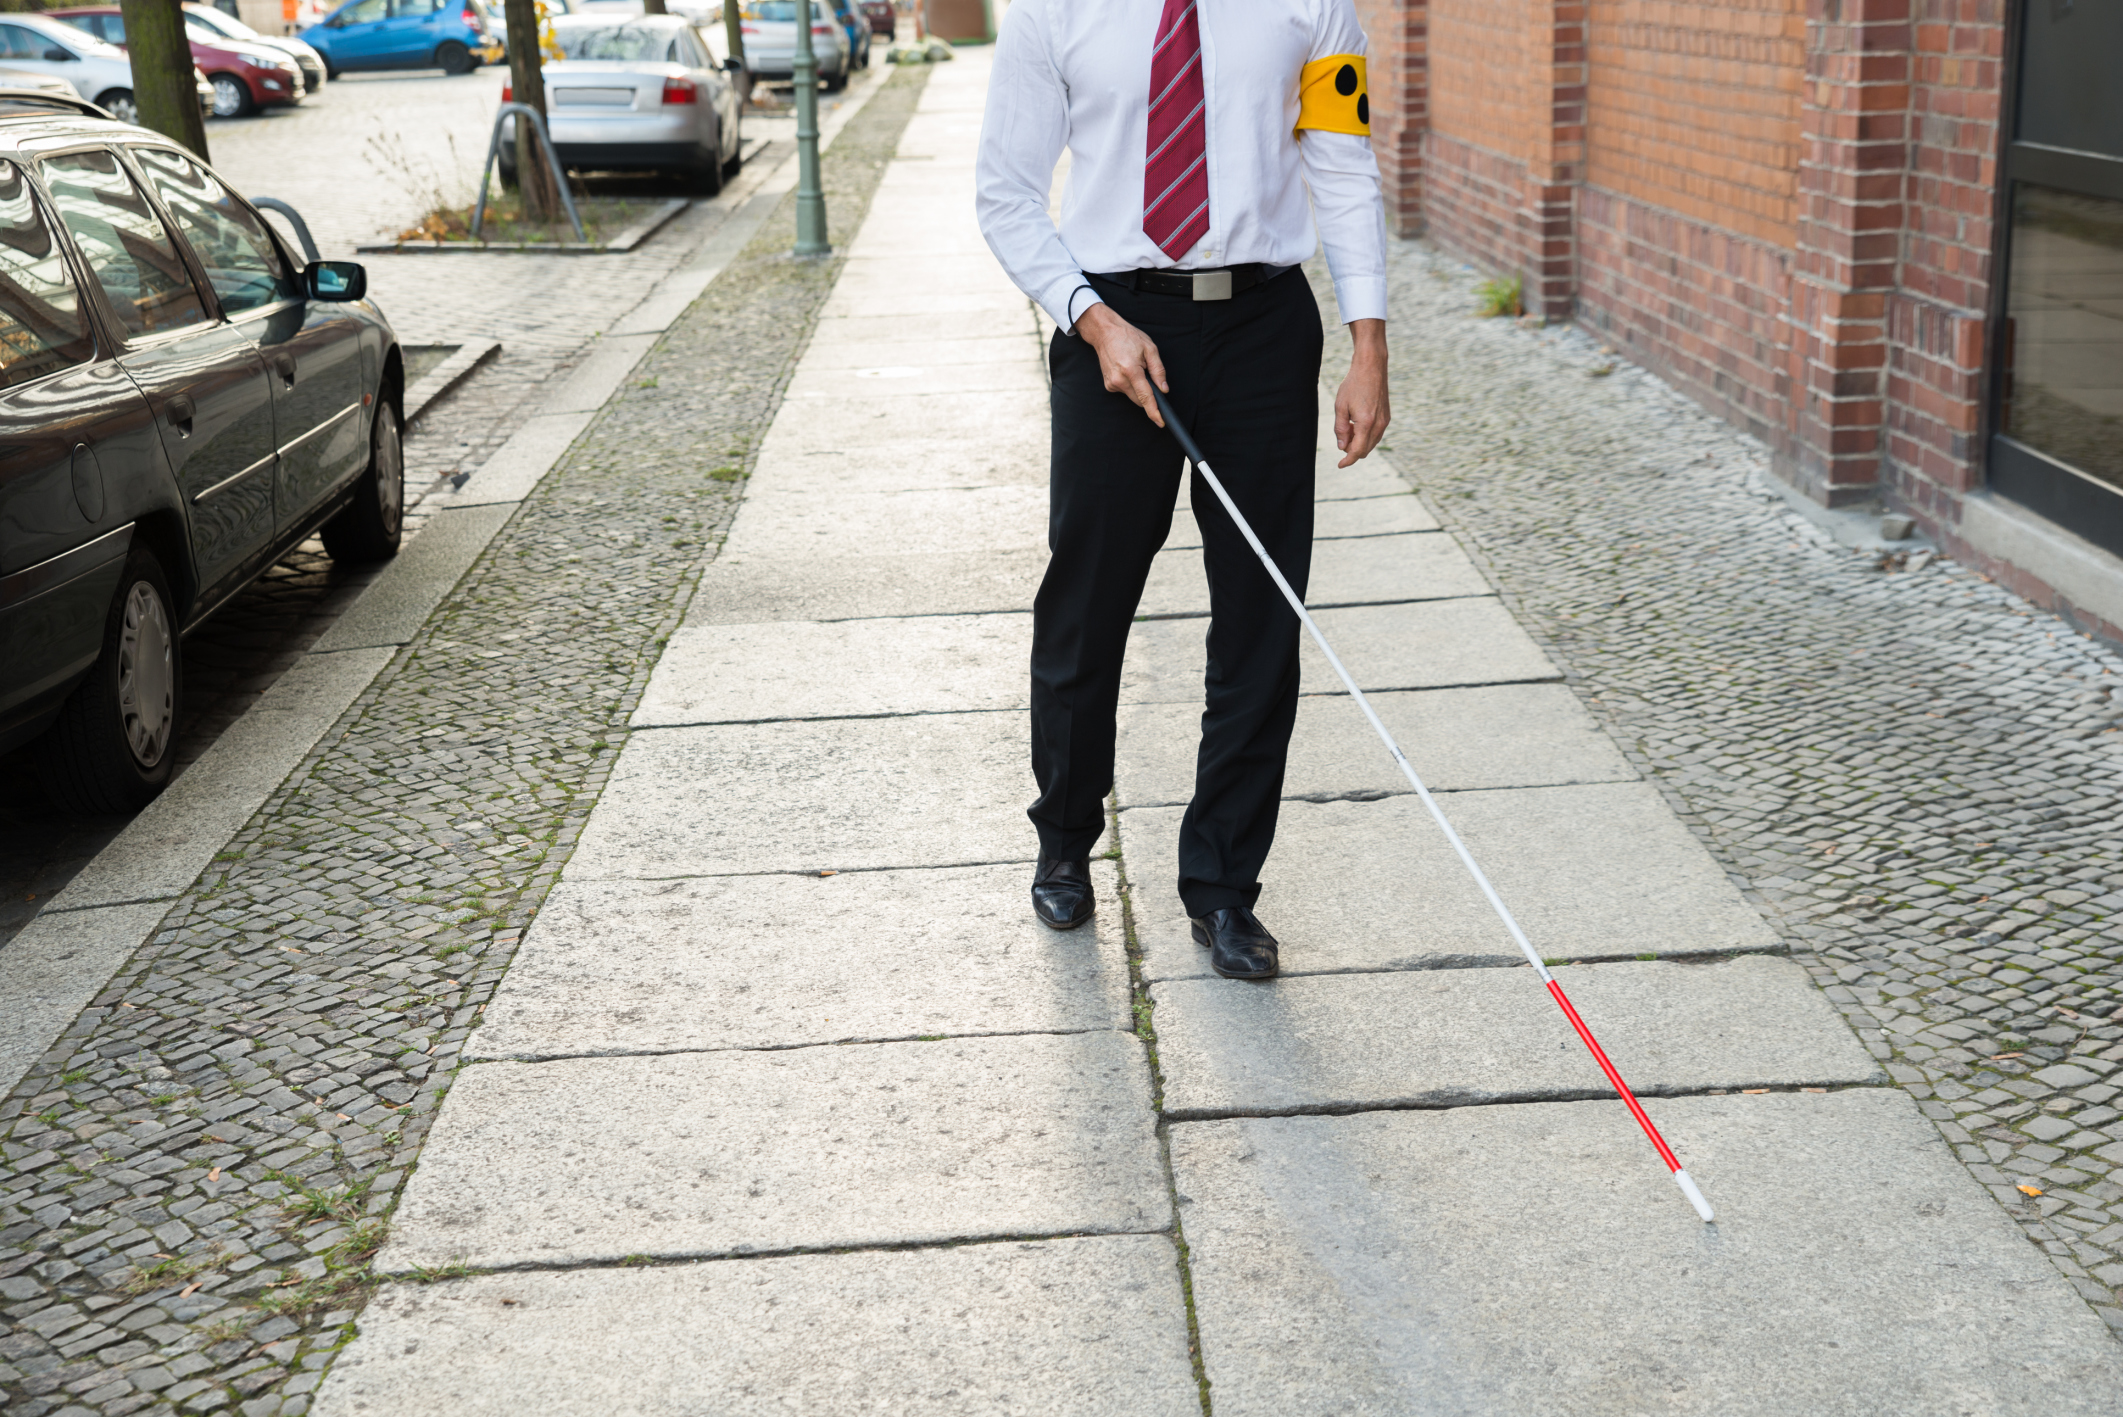 pioneering facial recognition cane for the blind